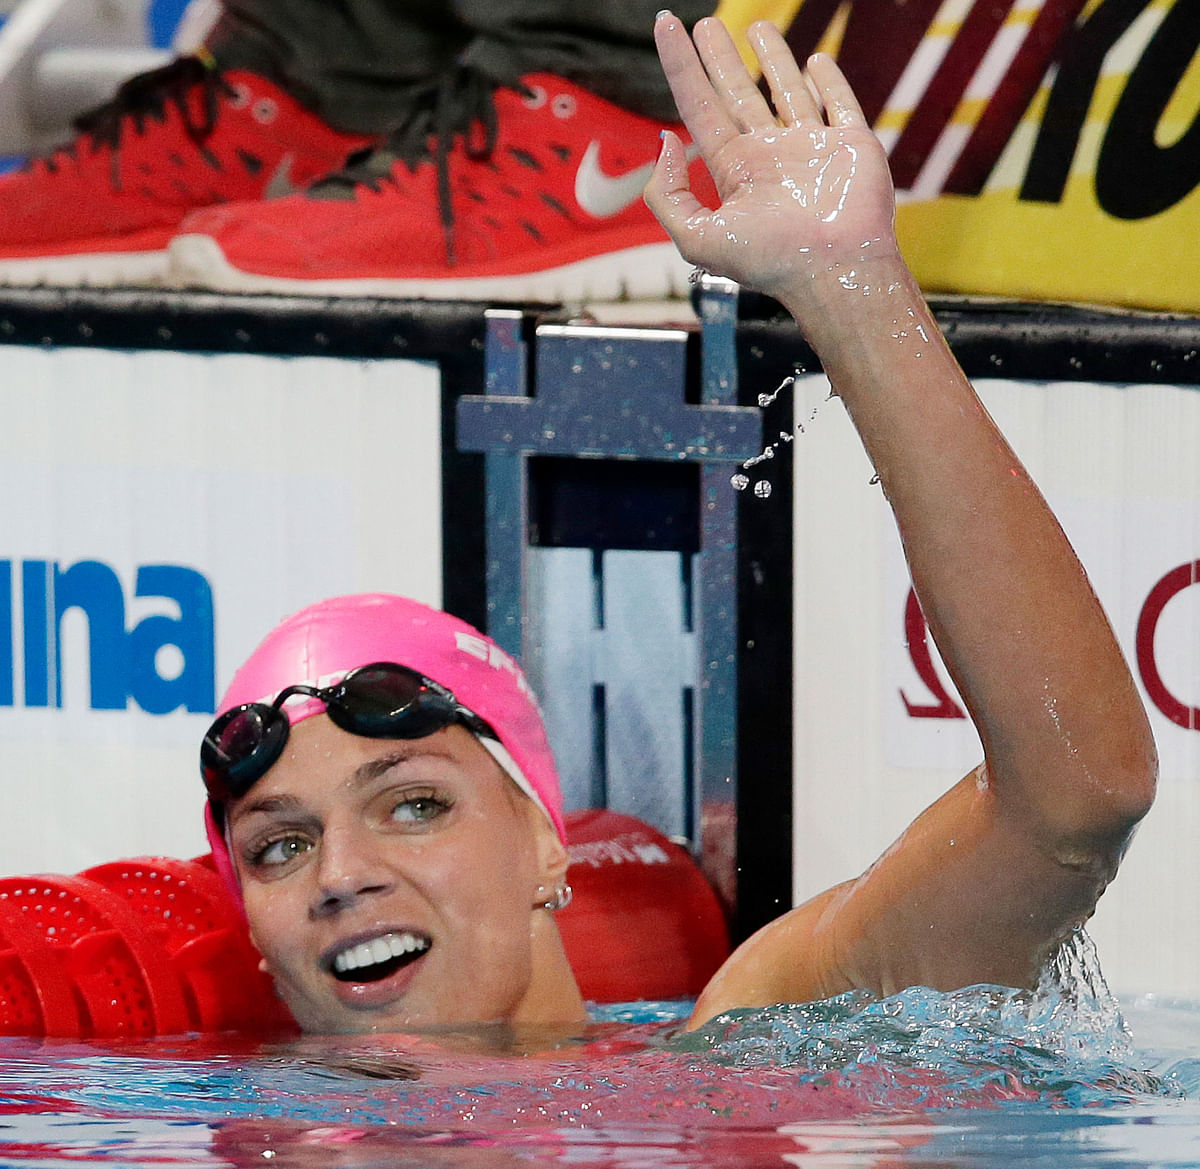 File photo of Russia's Yulia Efimova after she won the  women's 100m breaststroke final at the Swimming World Championships in 2015. (Photo: AP)